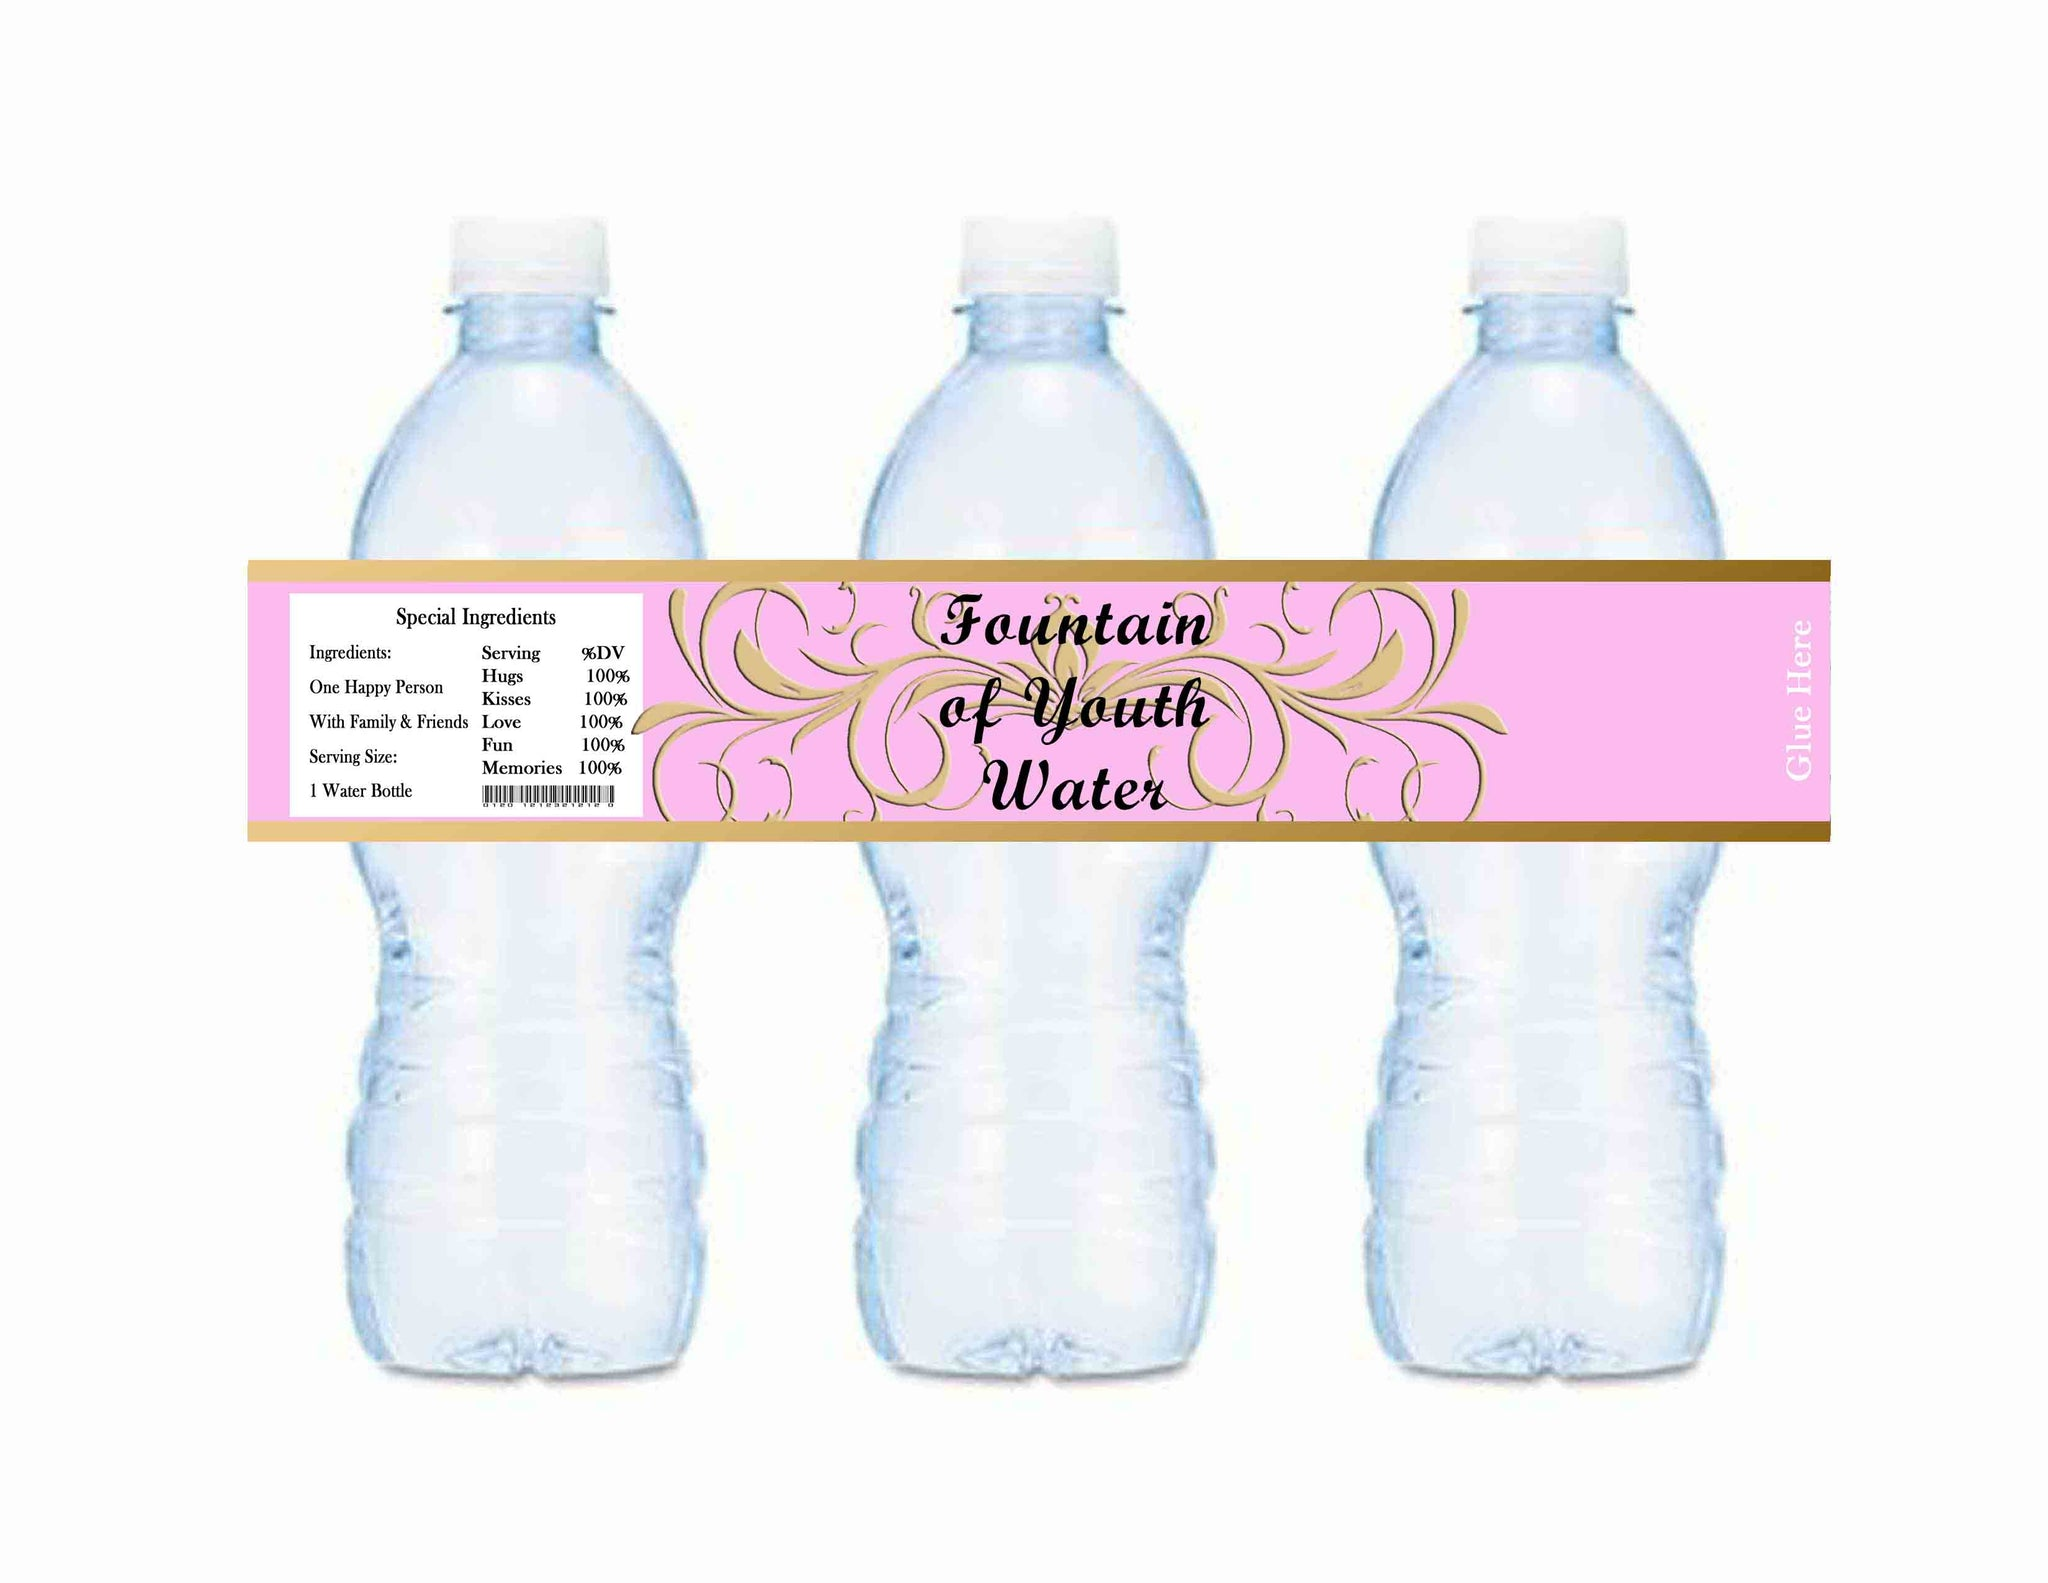 Old World Fountain of Youth Water Baby Shower or Birthday Bottle Labels Pink - Instant Printable - Invites and Delites